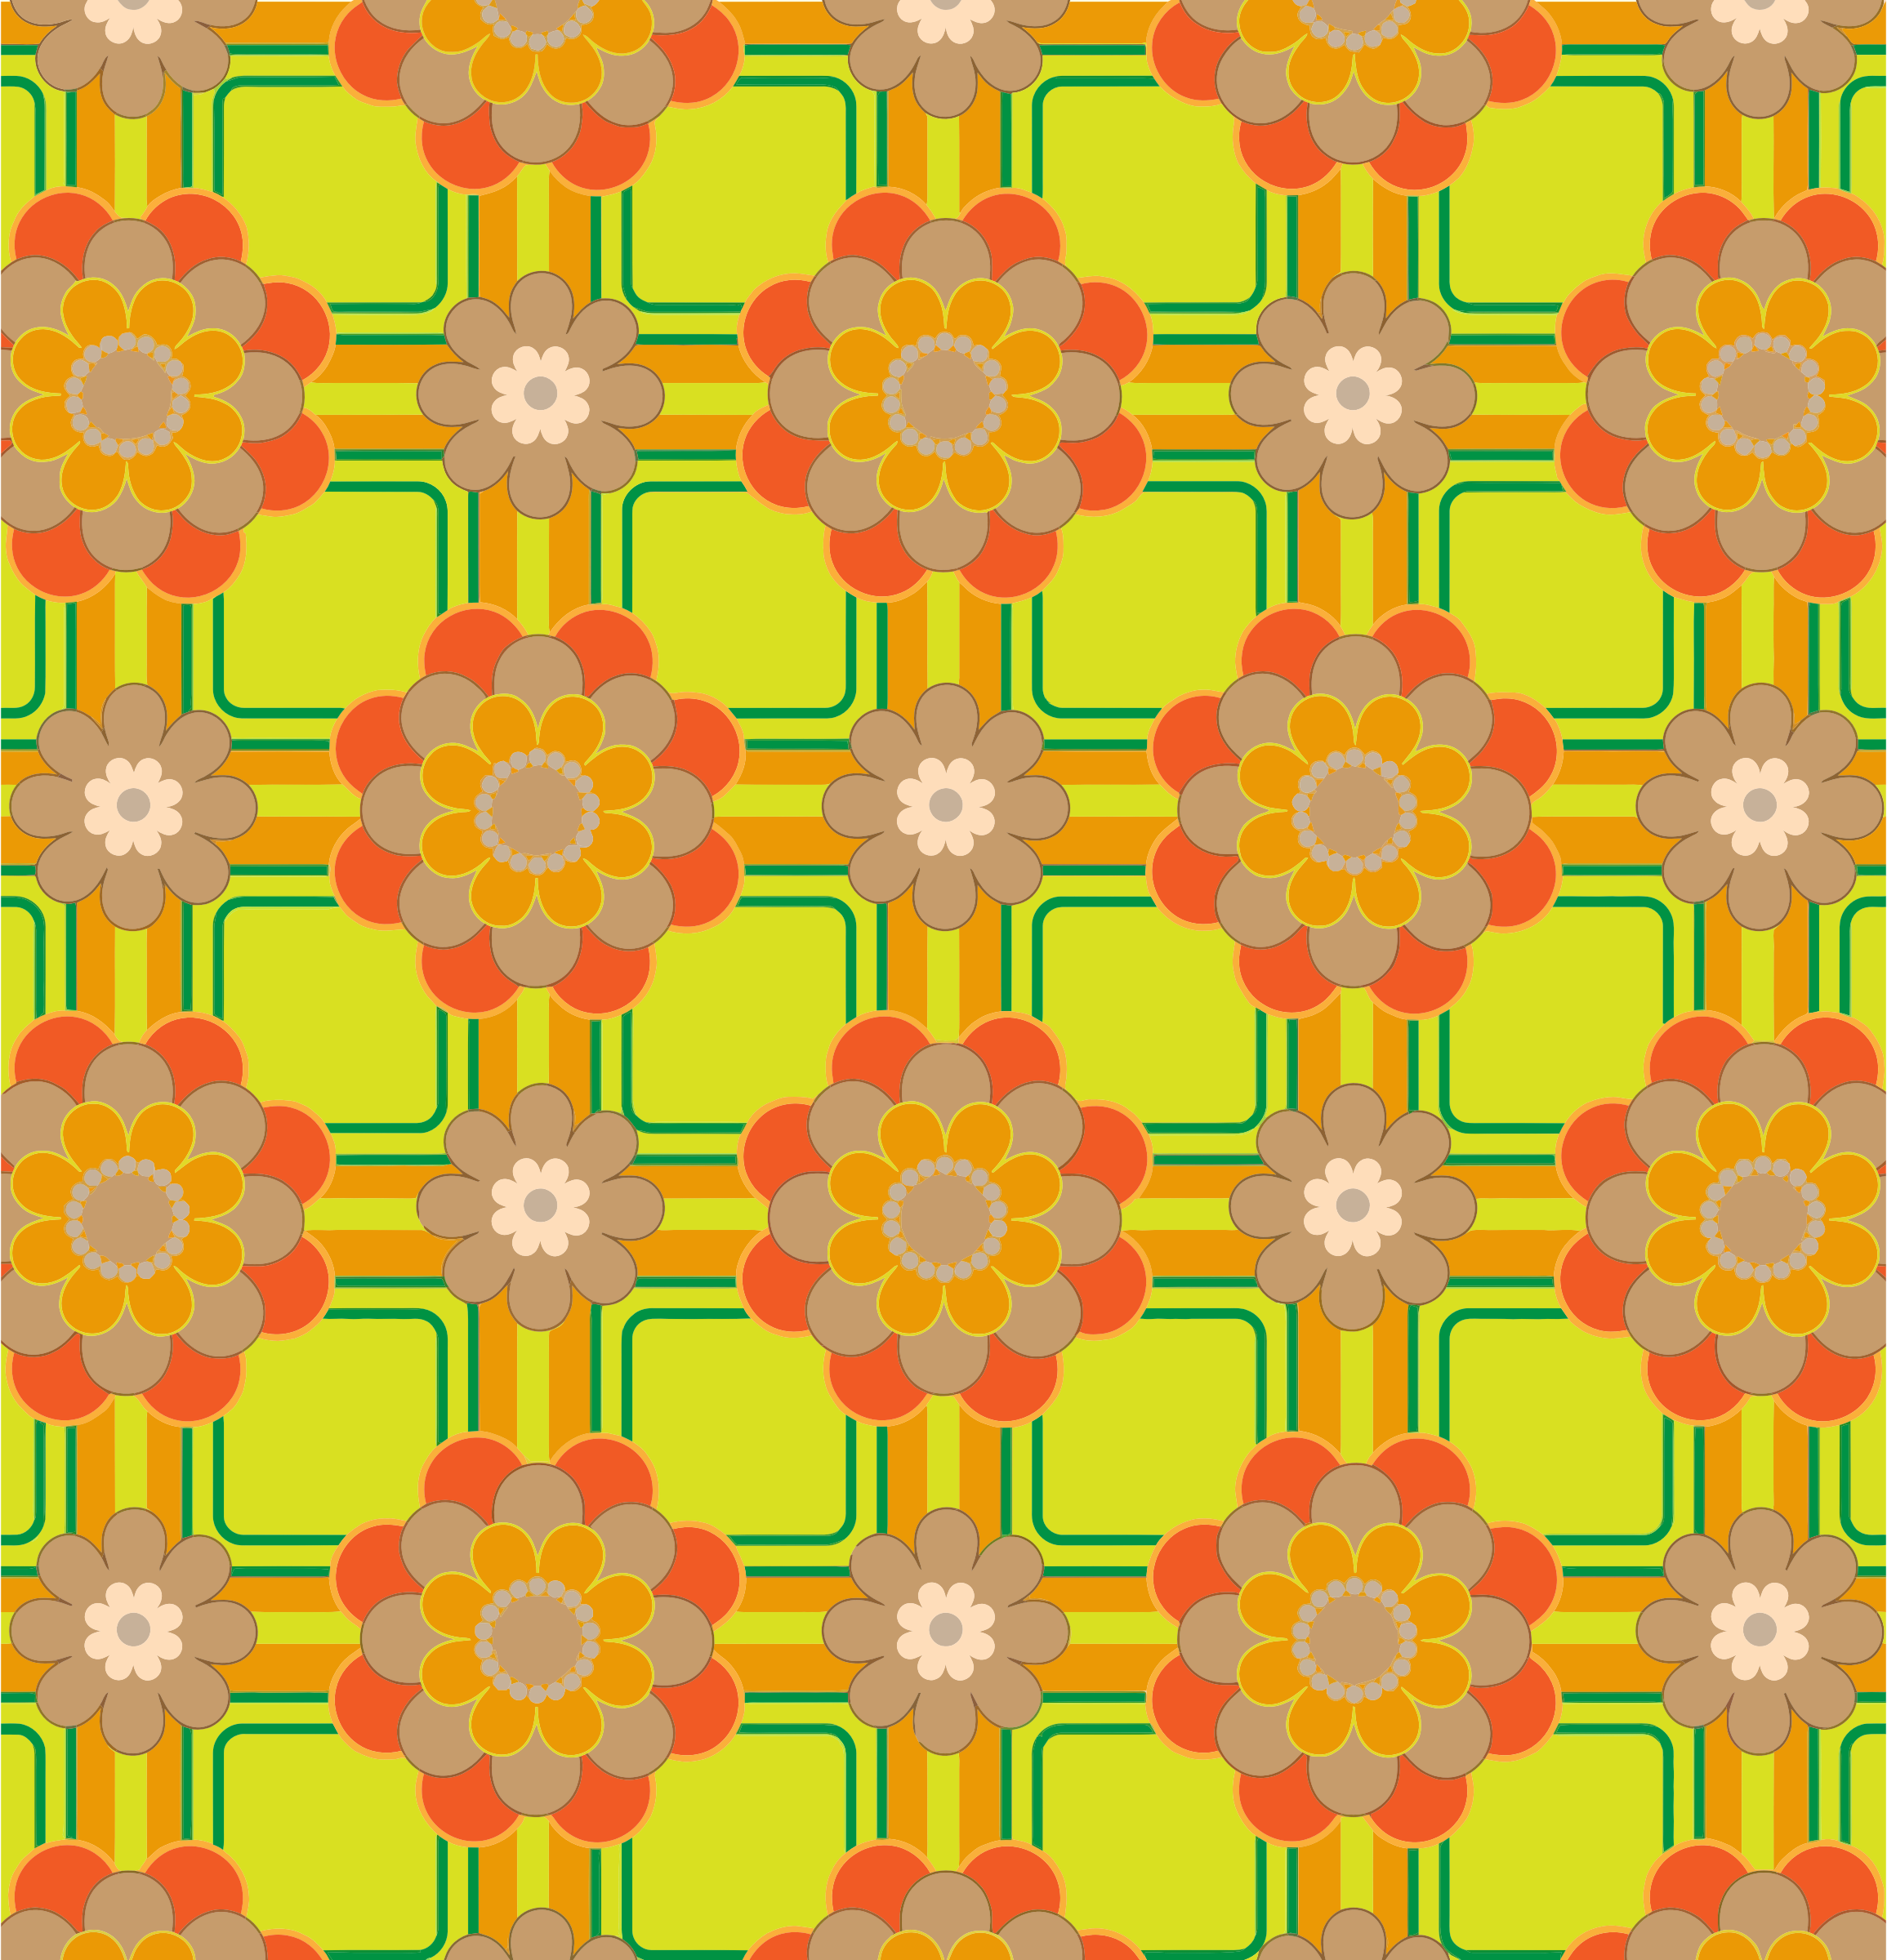 Colorful Floral Pattern Background 4 by GDJ